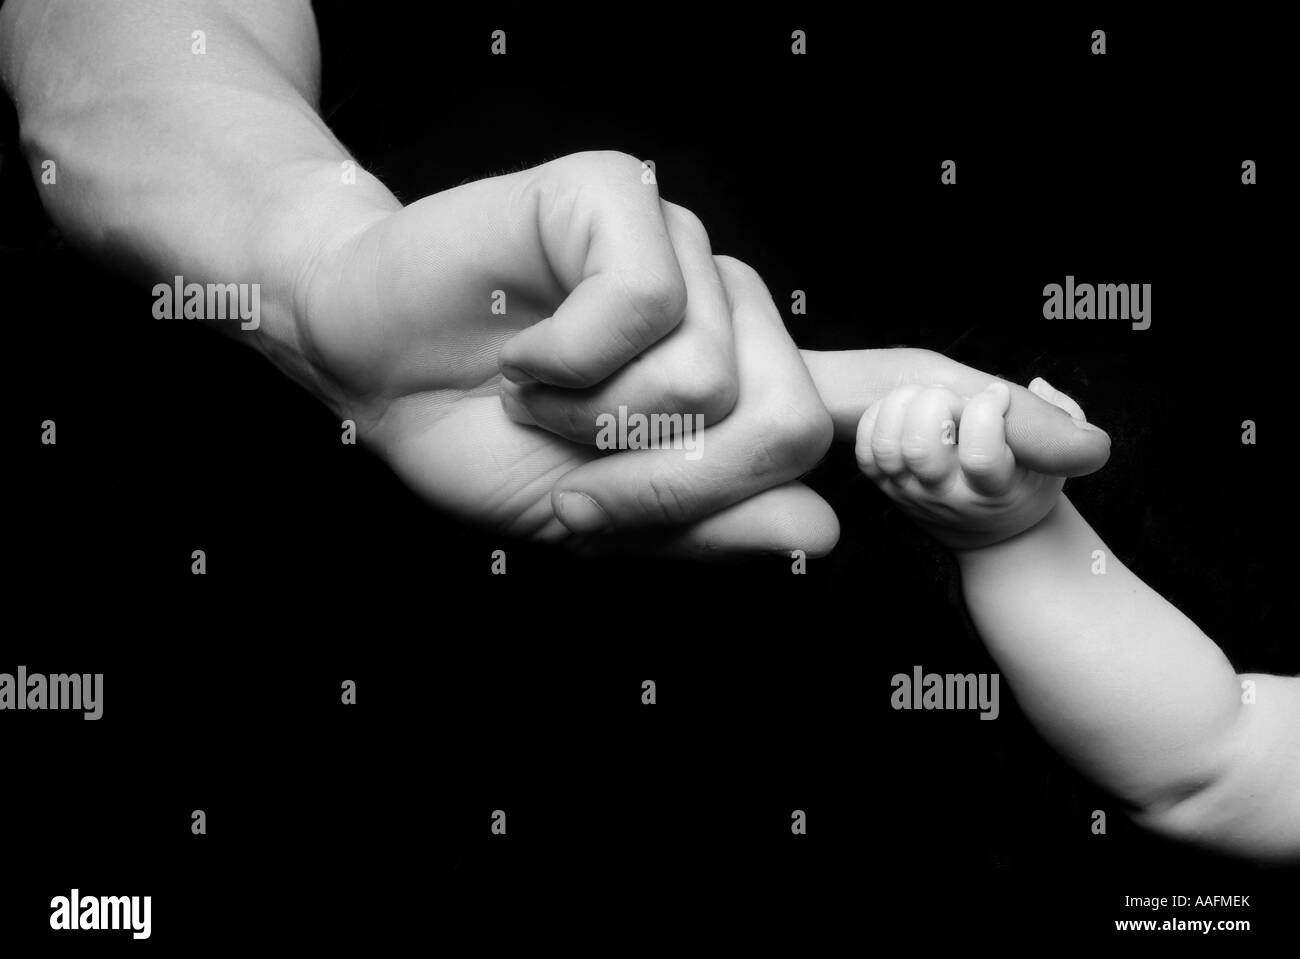 A young baby holding the parents finger.  Shot in black and white and on a black background. - Stock Image